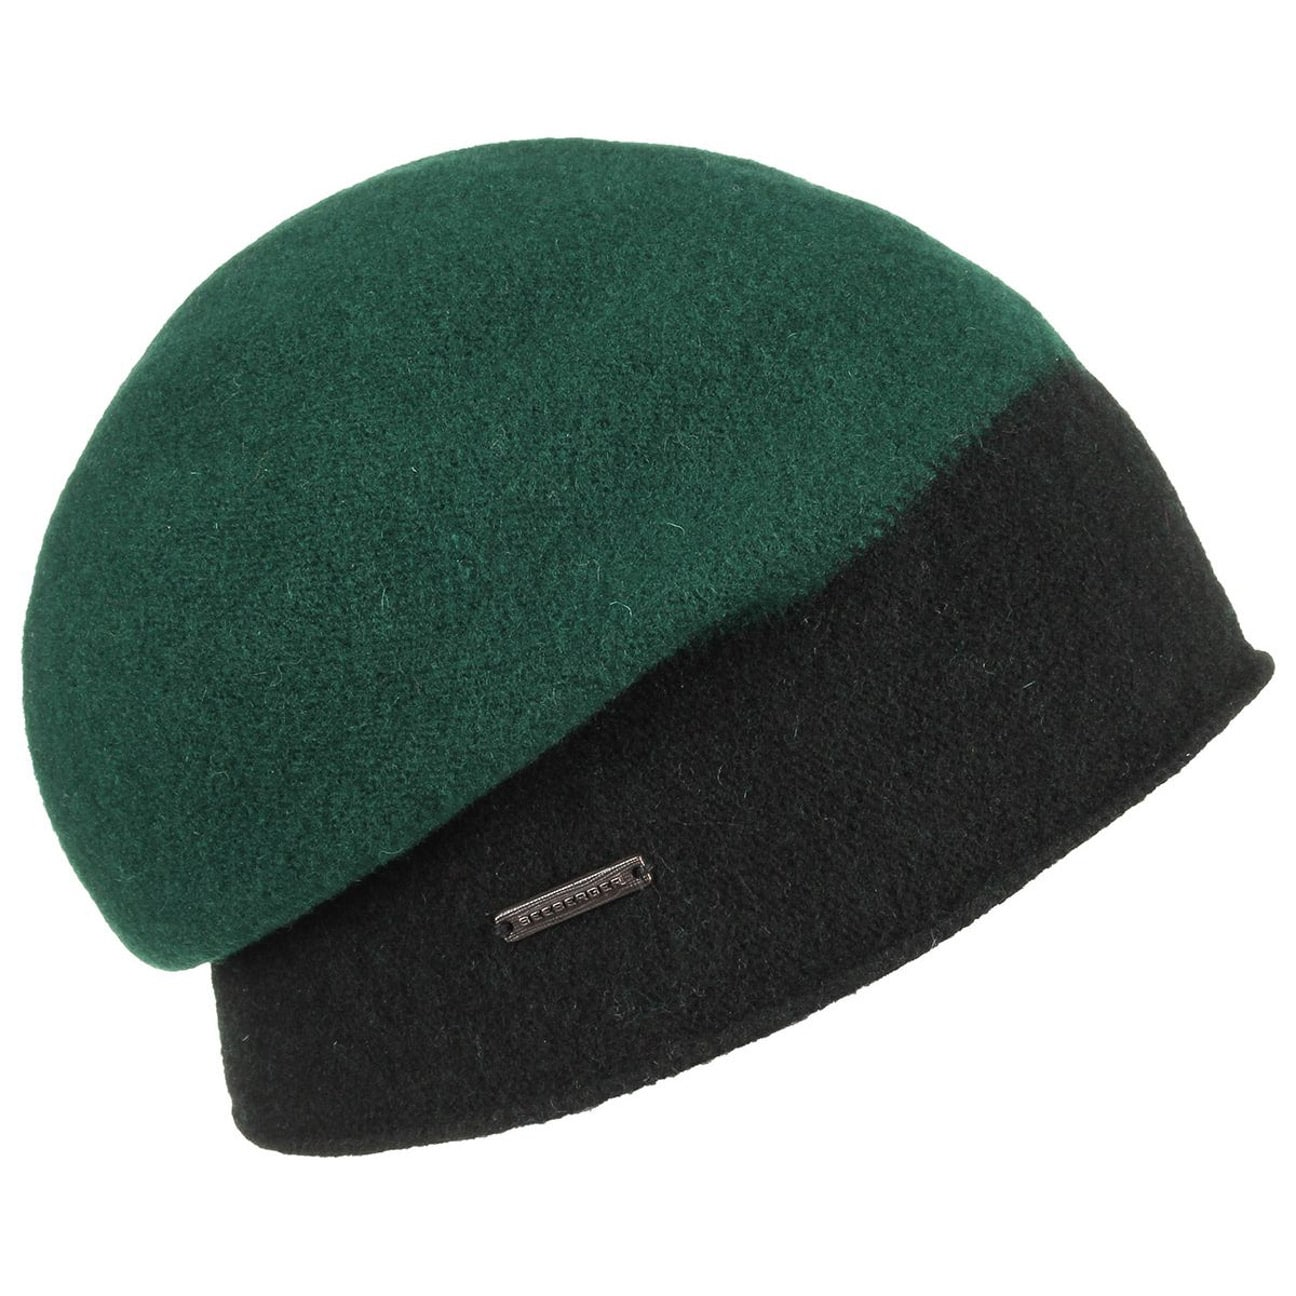 ec9e0c90290 ... Lissy Twotone Milled Wool Hat by Seeberger - green 1